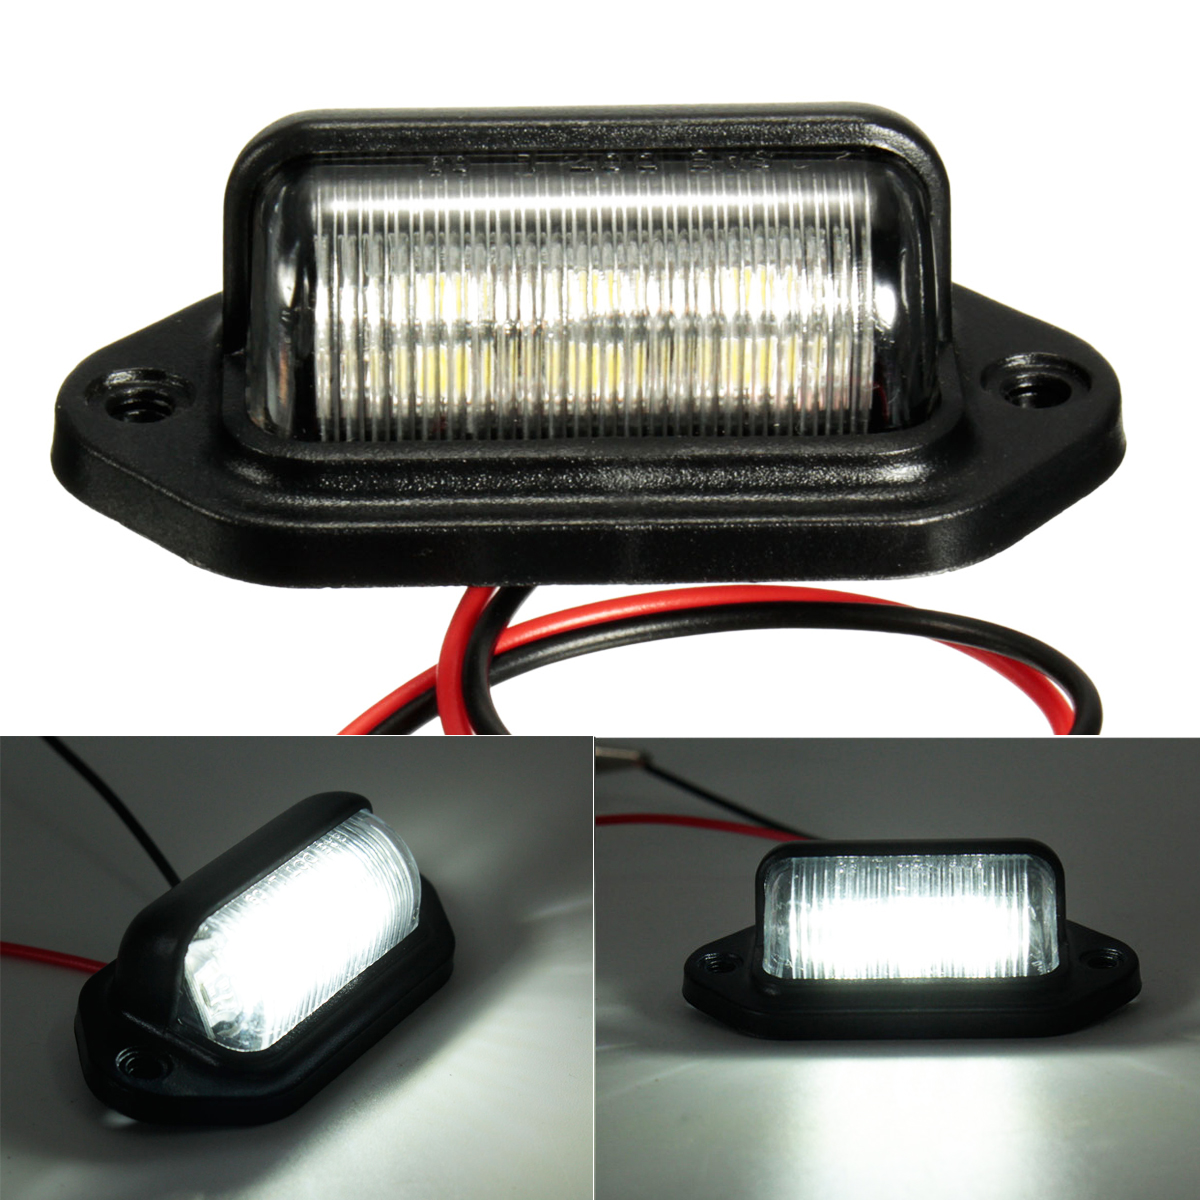 6LEDs Number License Plate Light Lamp Bulbs for Boats Motorcycle Automotive Aircraft